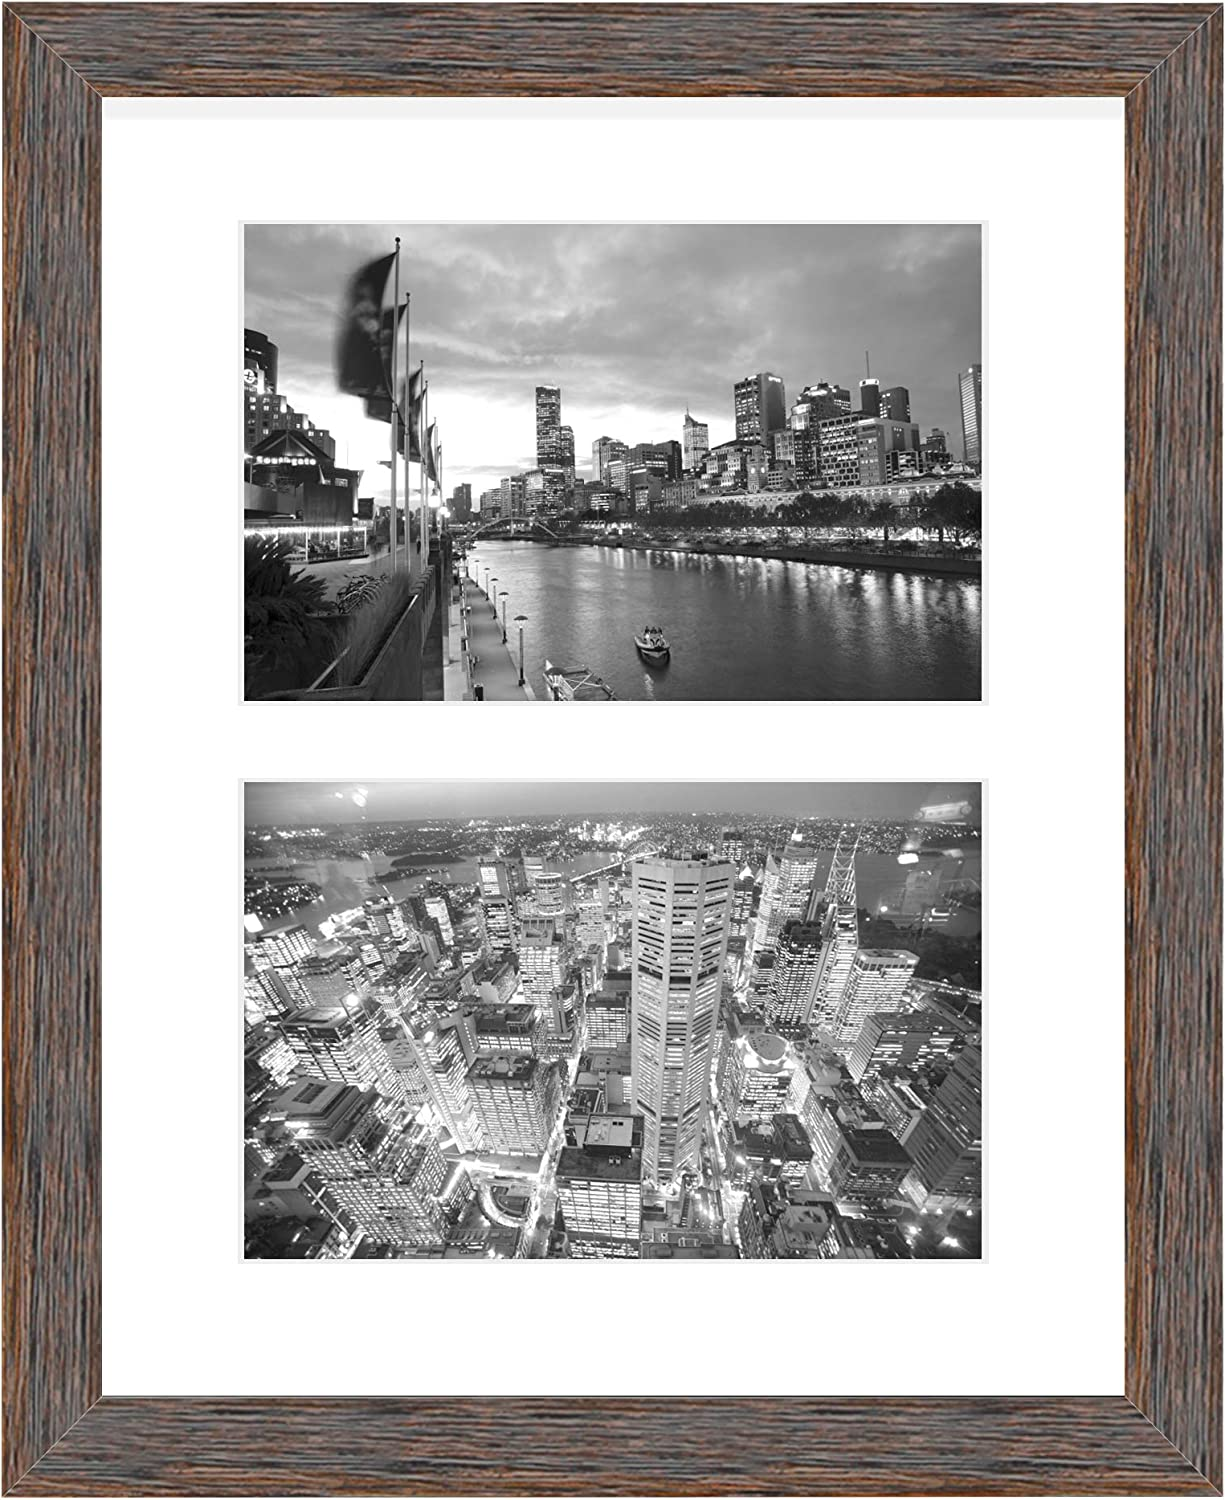 Golden State Art, 8x10 Distressed Brown Collage Picture Frame - White Mat for (2) 4x6 Pictures - Wood Molding - Easel Stand for Tabletop - D-Rings for Wall Display - Great for Homes, Offices, Events